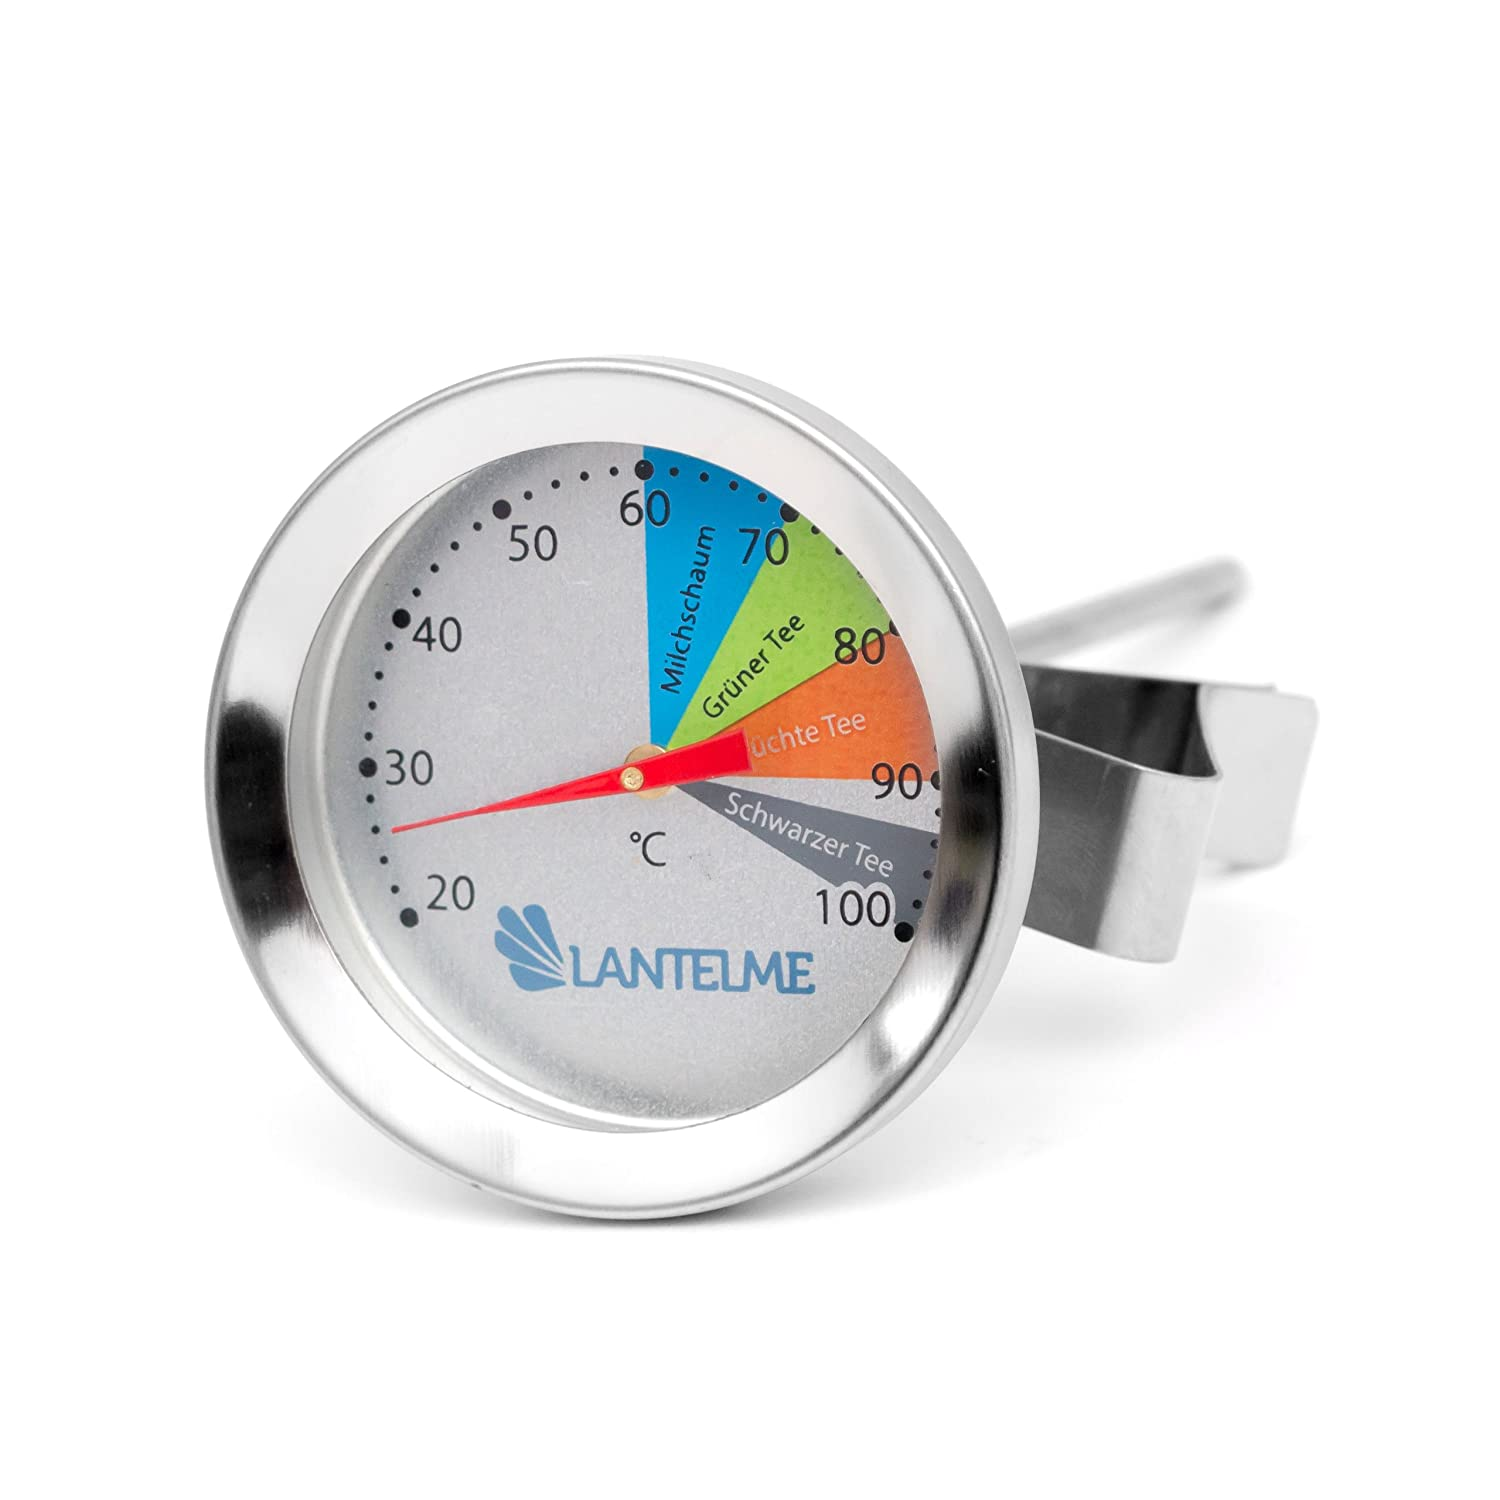 Combination Milk / Milk Foam / Tea Thermometer Made of Stainless Steel for Milk Jugs / Teapots / Cups and Much More Lantelme